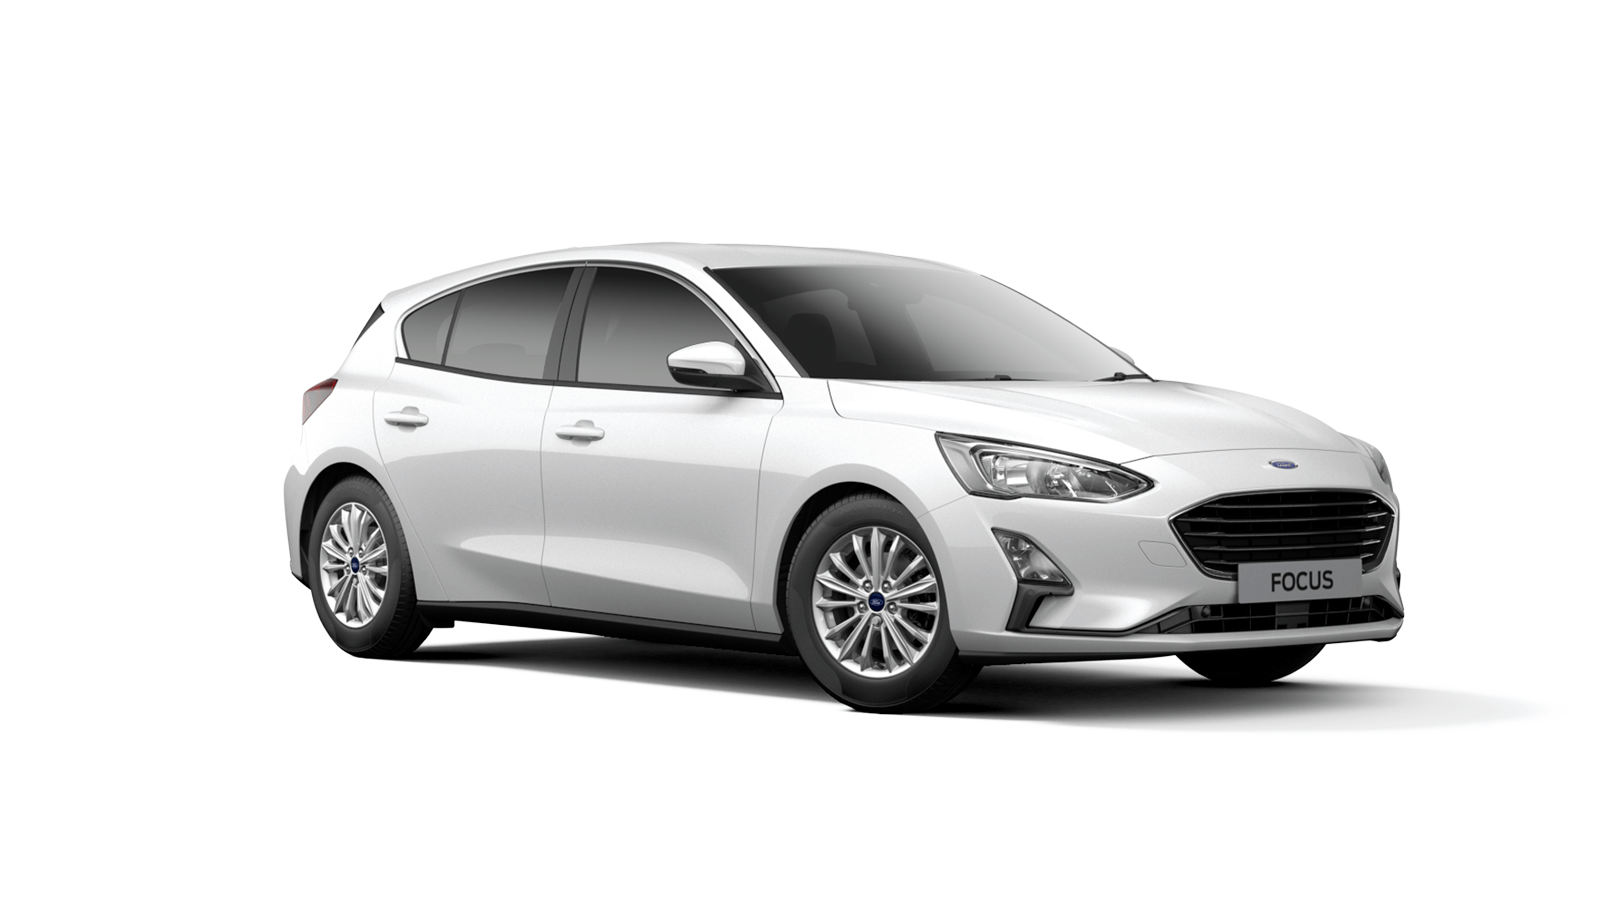 Drive away in a 2019 Focus exclusively at Barlo Motors Clonmel and Thurles